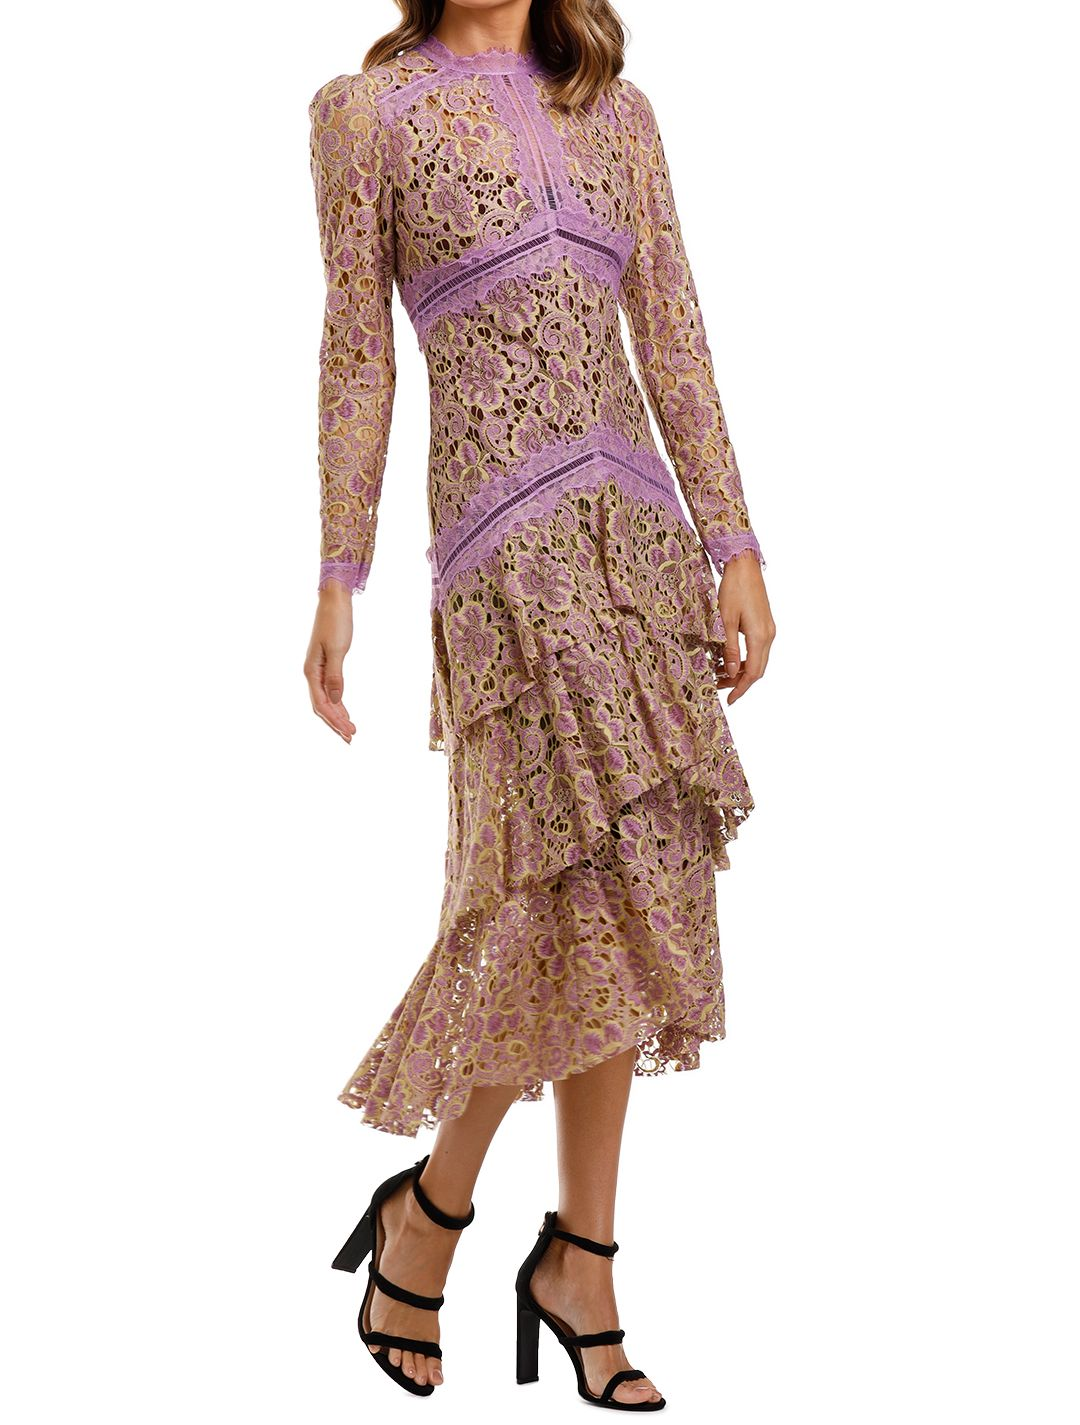 Moss and Spy Amber Tiered Dress lace long sleeve